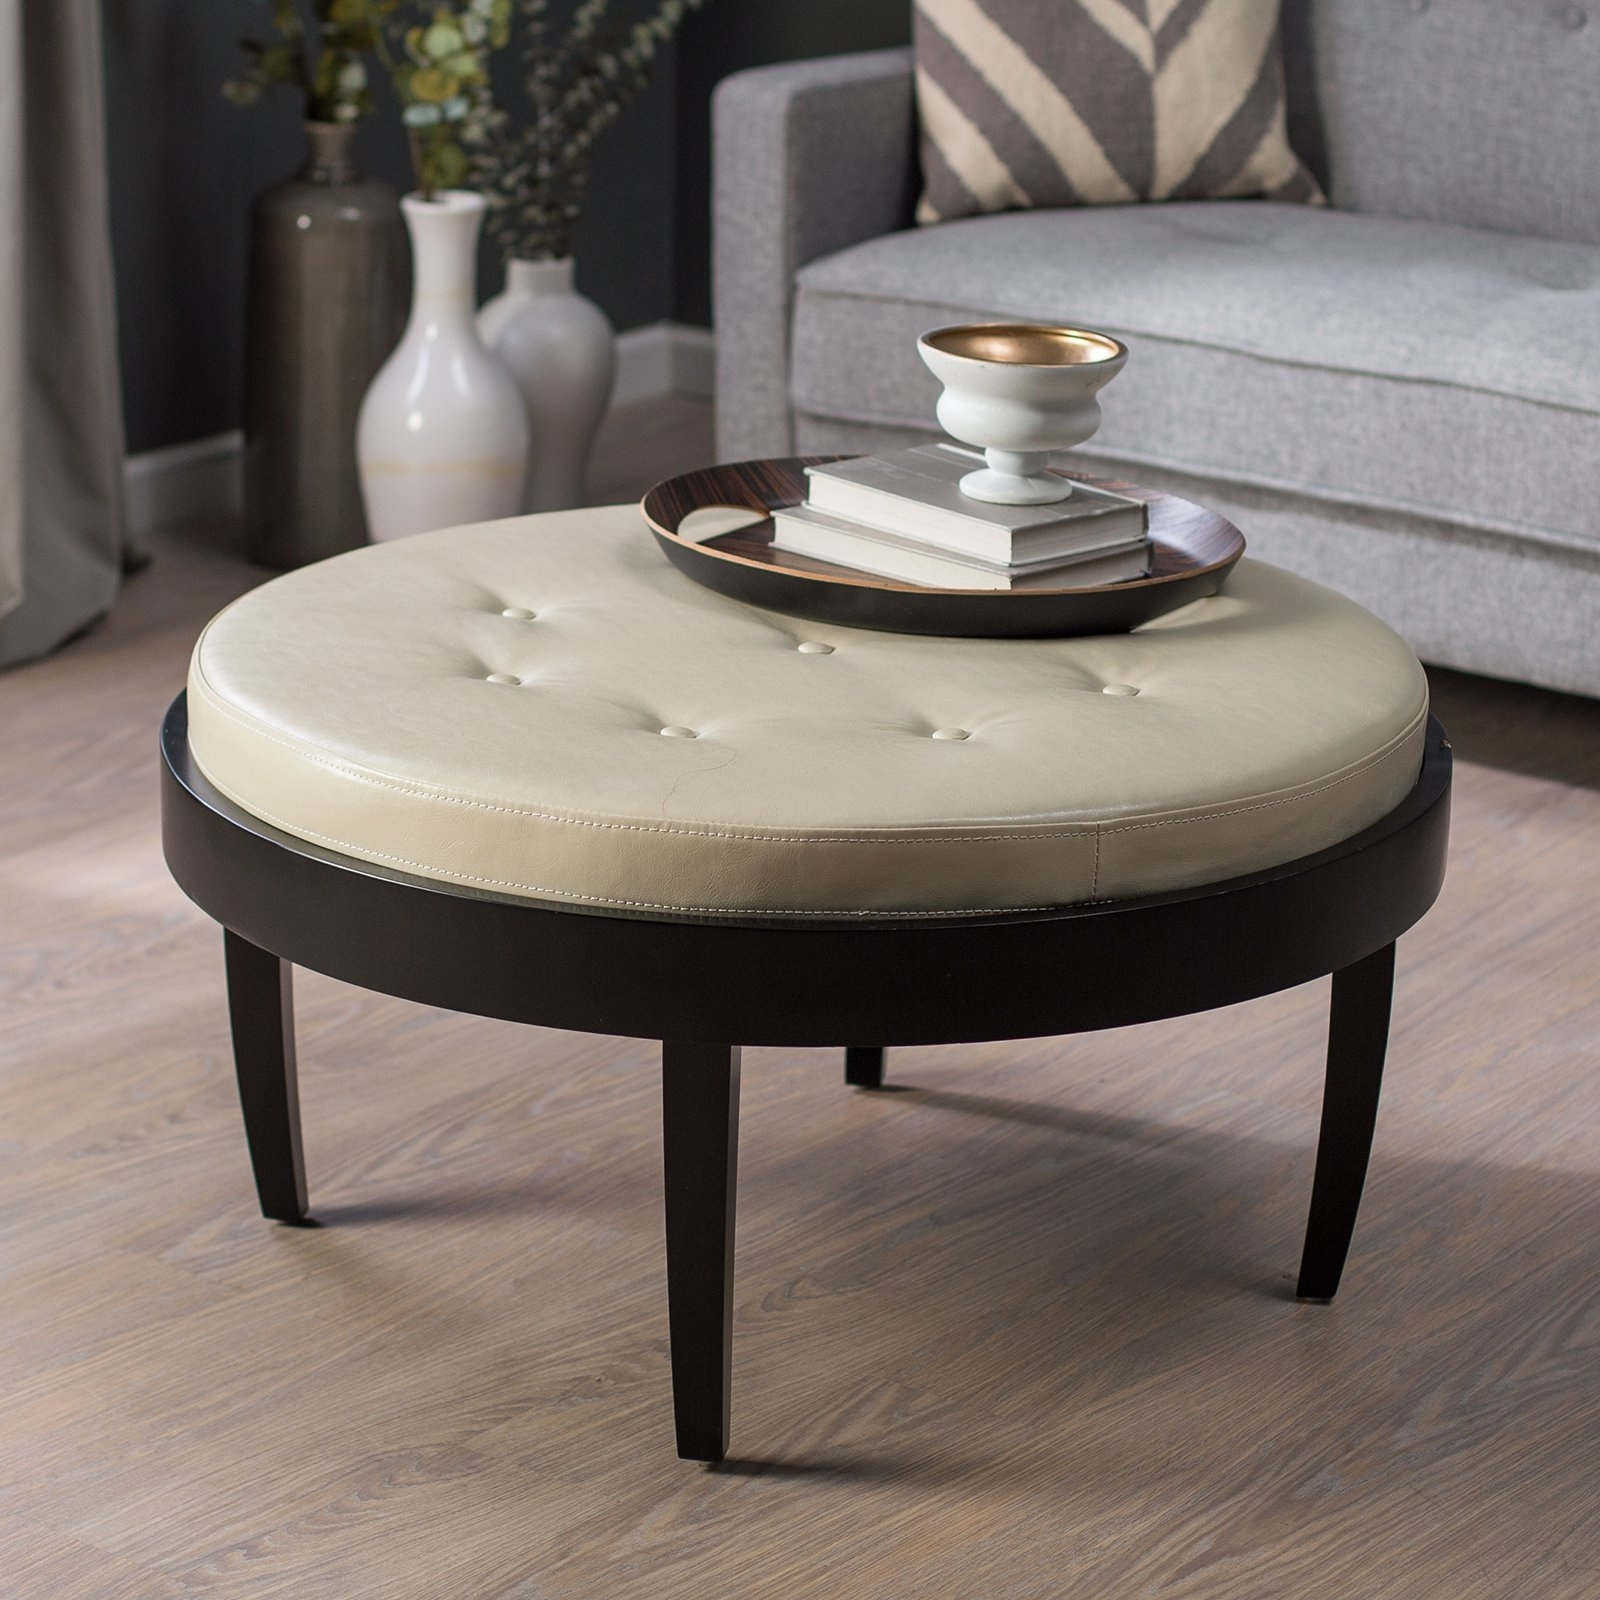 Citation Coffee Table Ottoman With Removable Cushion - Walmart regarding Button Tufted Coffee Tables (Image 5 of 30)